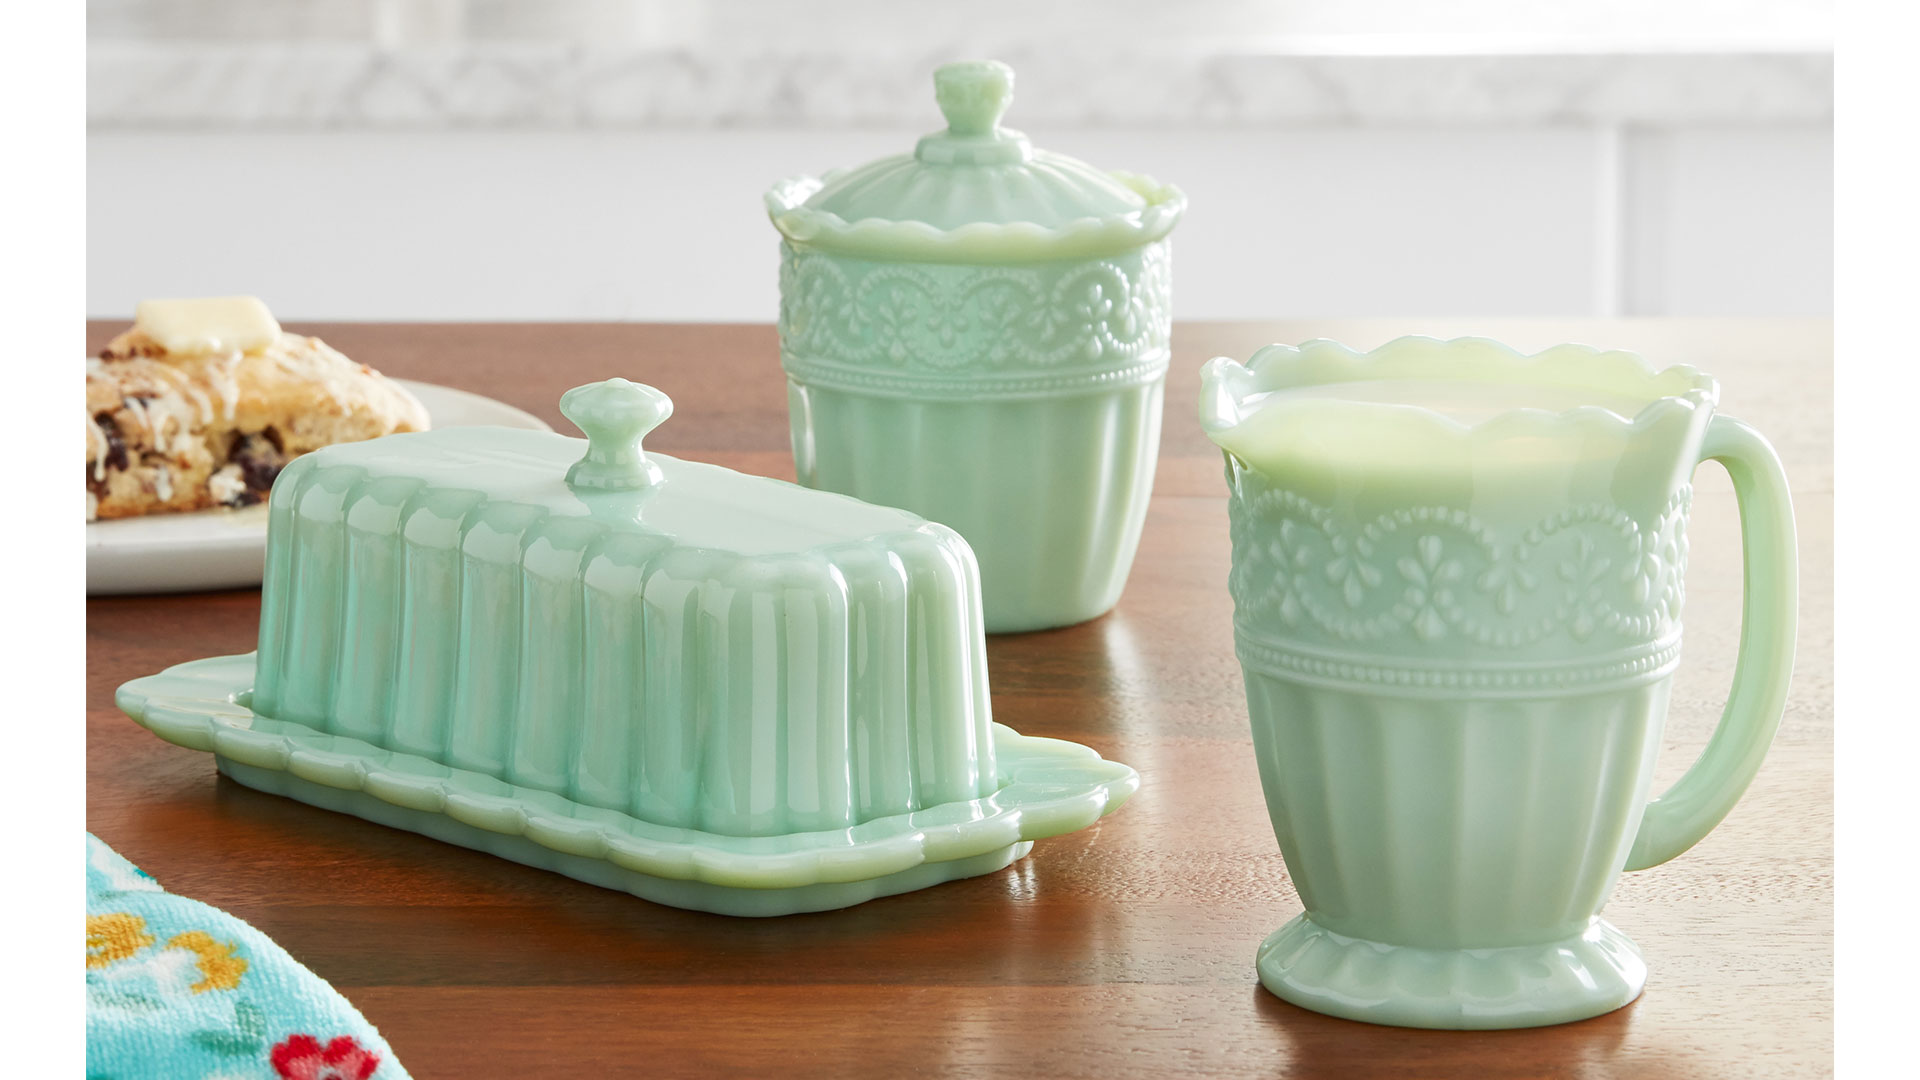 Ree Drummond's Jadeite Kitchenware Collection is a Vintage-Lover's Dream